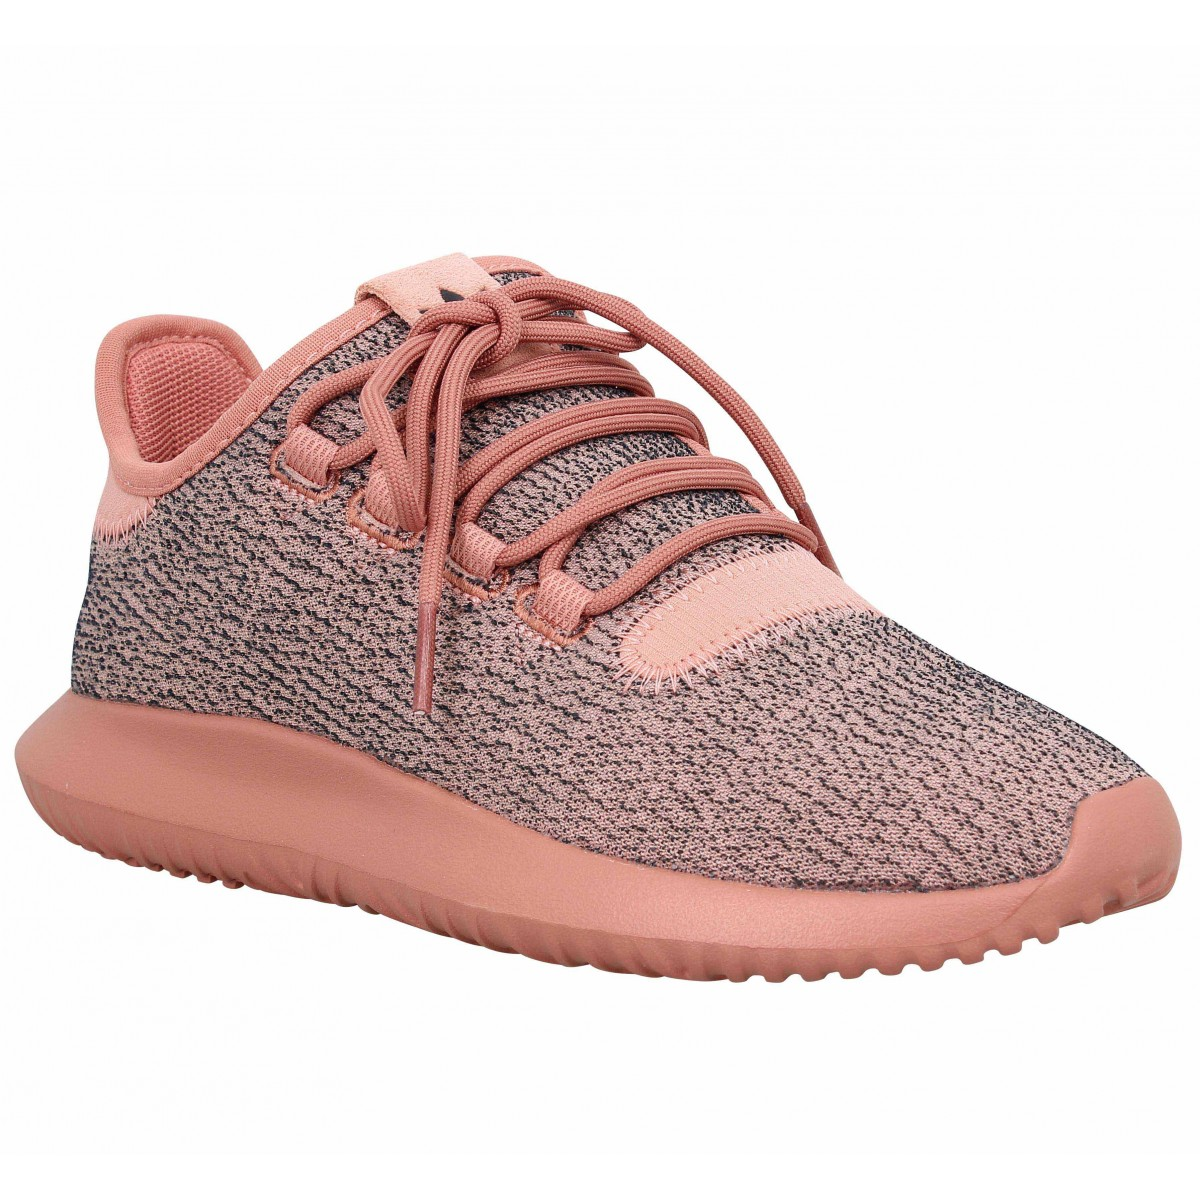 Baskets ADIDAS Tubular Shadow toile Femme Rose